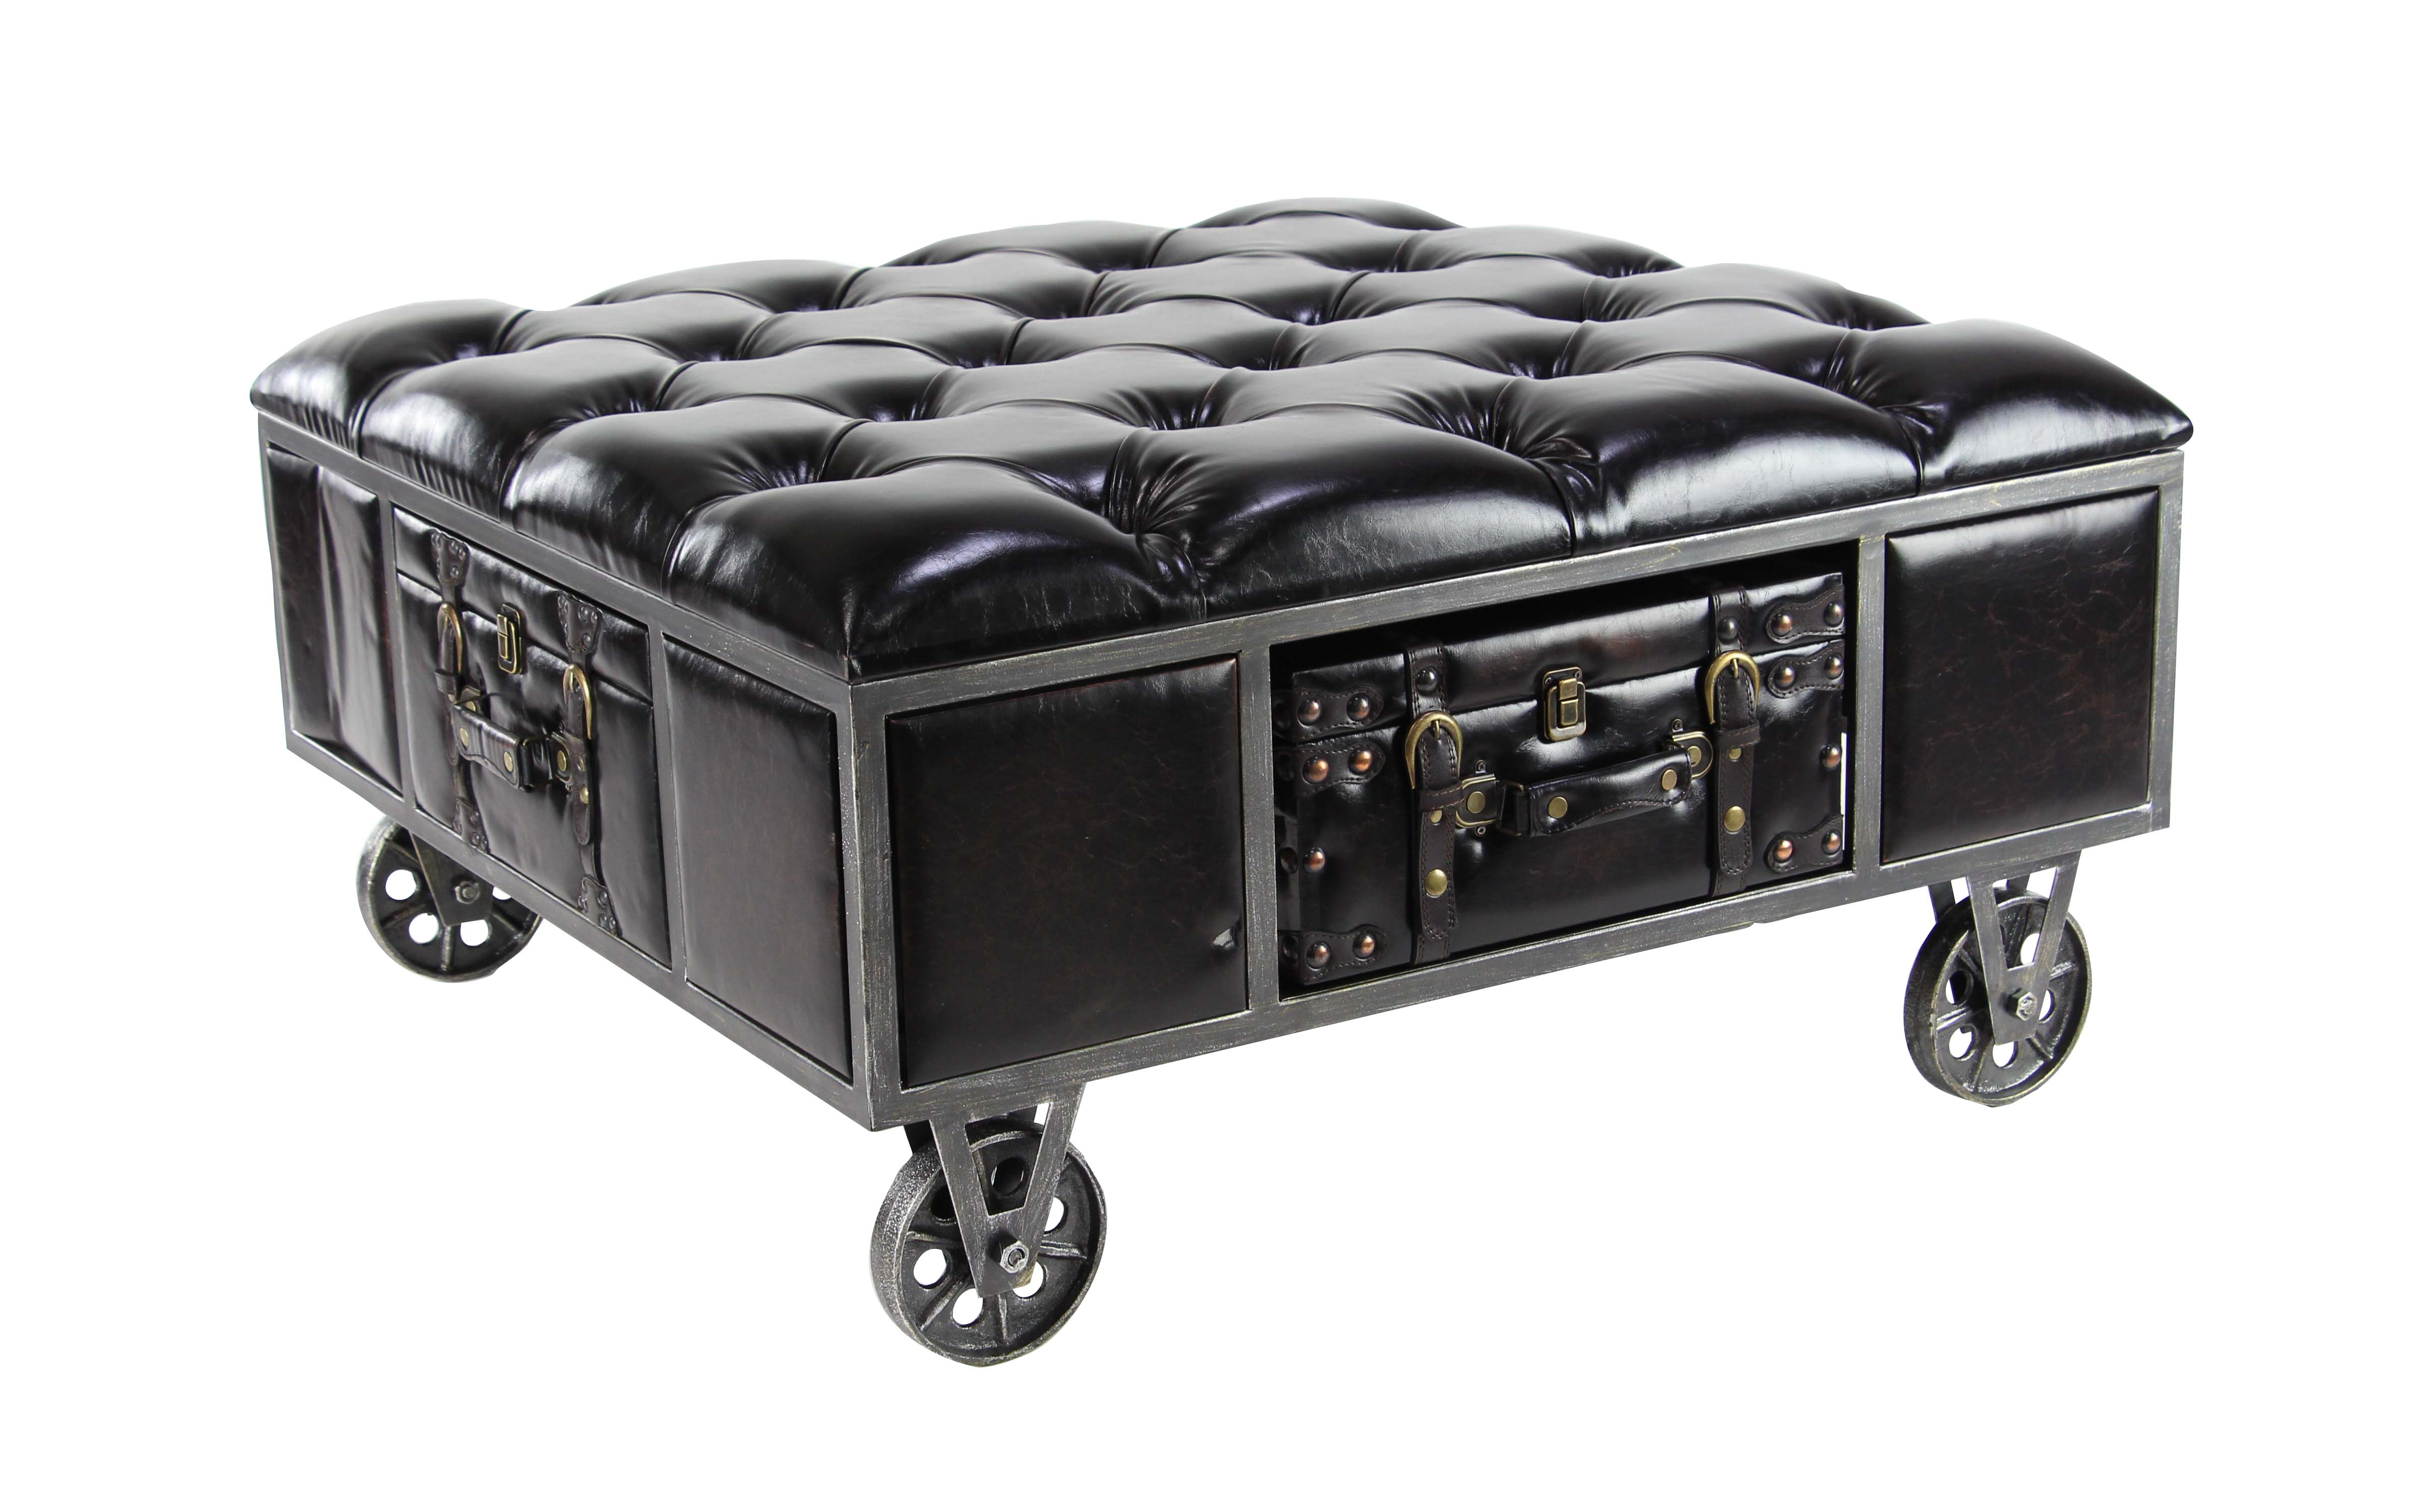 Decmode Traditional Wood And Metal Tufted Leathered Square Storage Bench,  Black